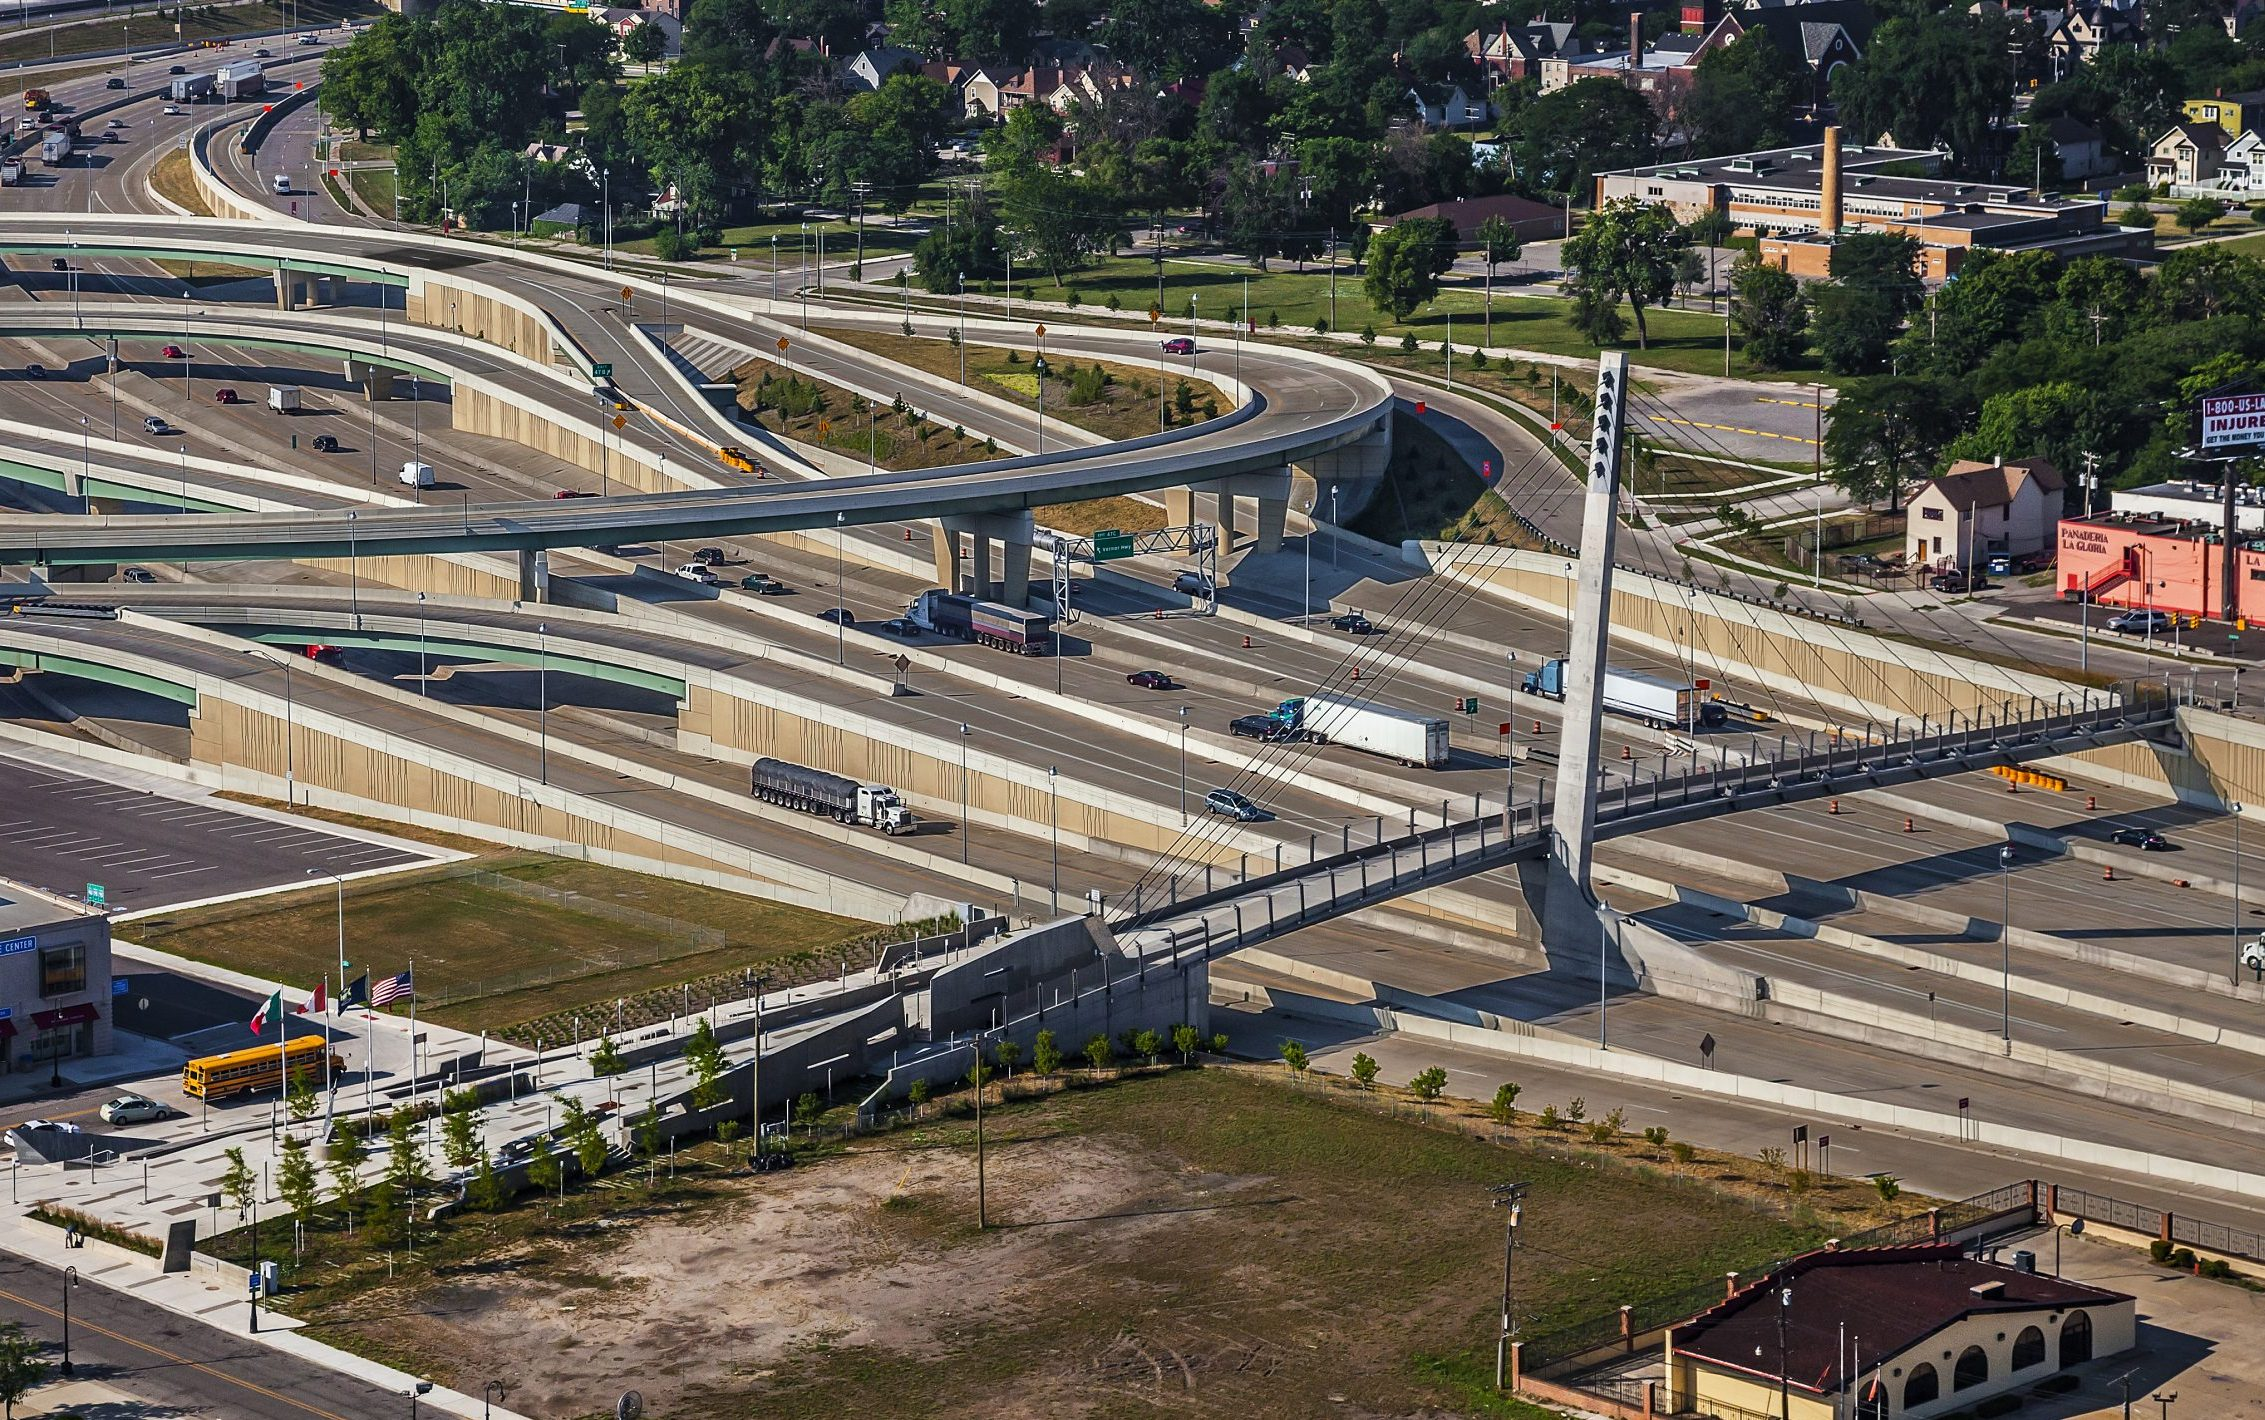 Drone aerial of freeway interchange and Bagley Avenue Pedestrian Cable Bridge Project in Detroit Michigan Urban Design and Infrastructure